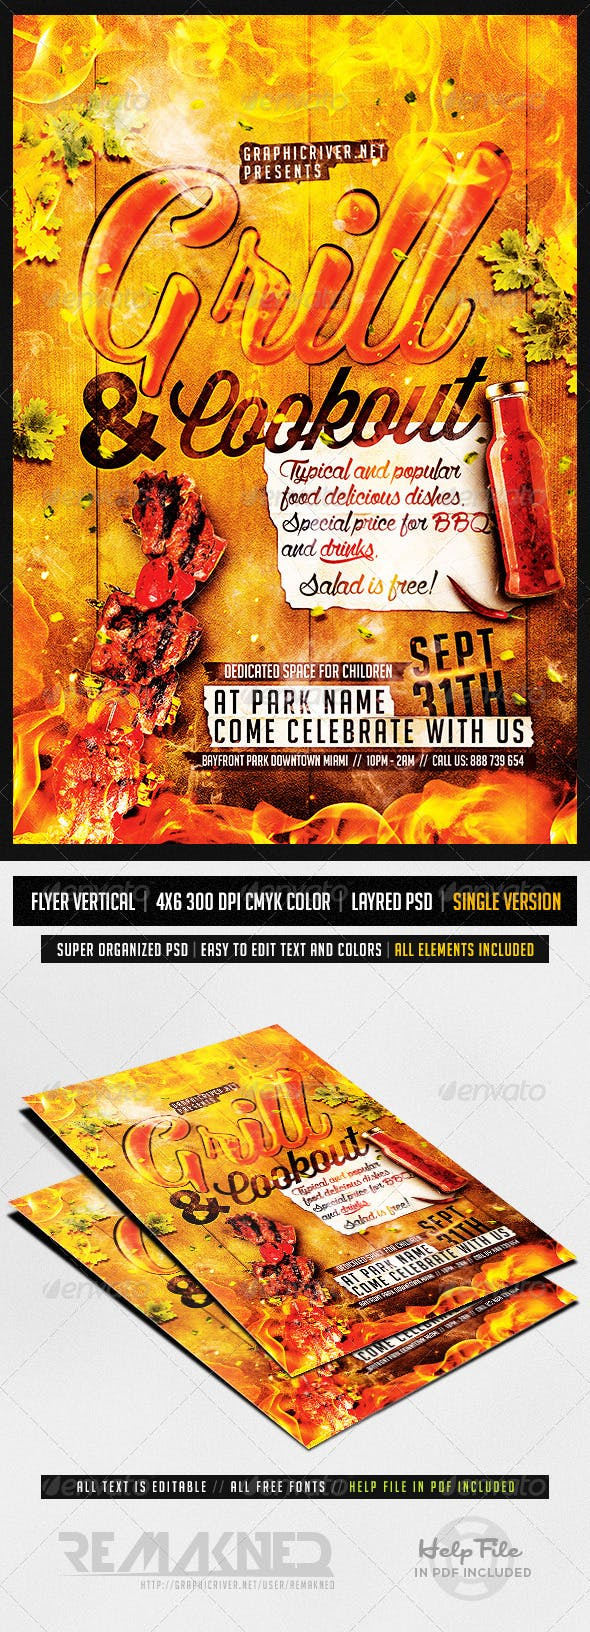 grill and cookout flyer template psd by remakned graphicriver